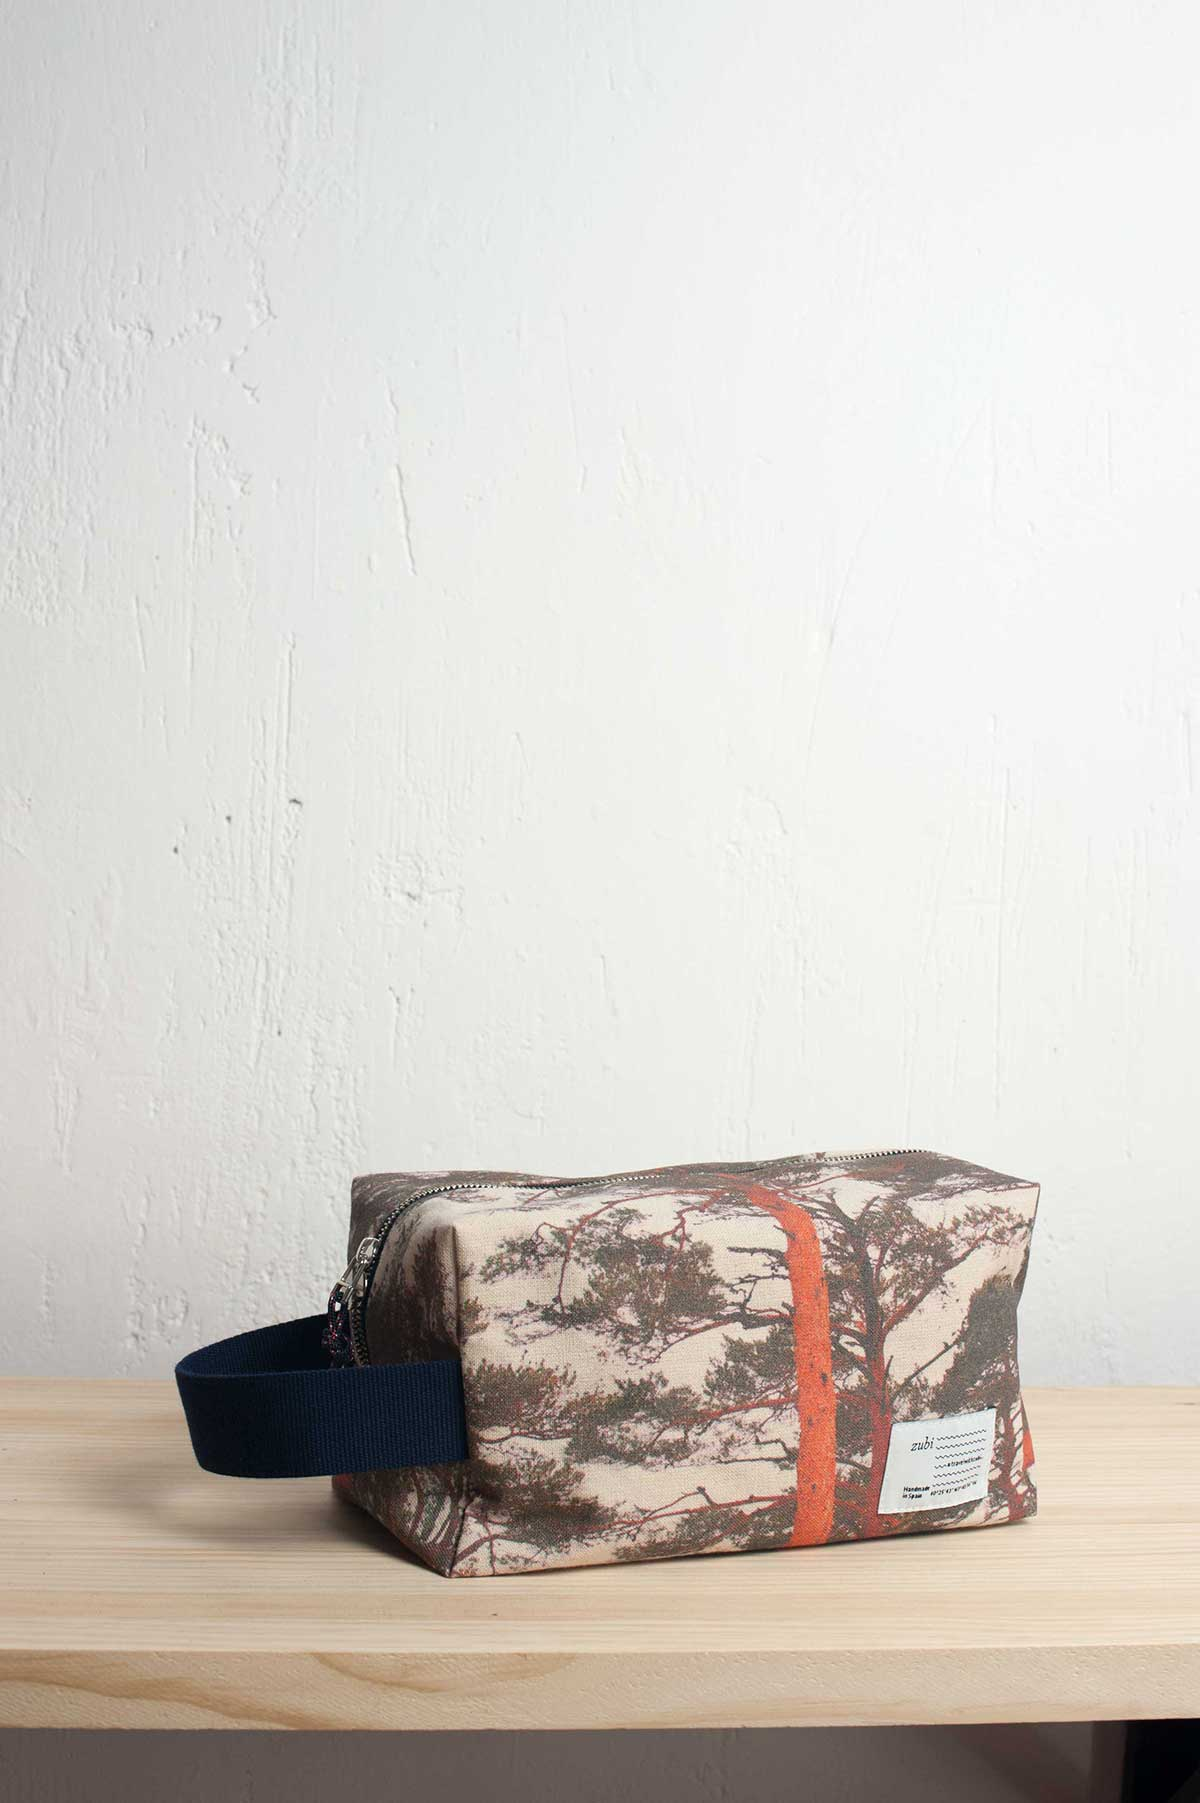 zubi_canvas_beauty_bag_Navacerrada_002